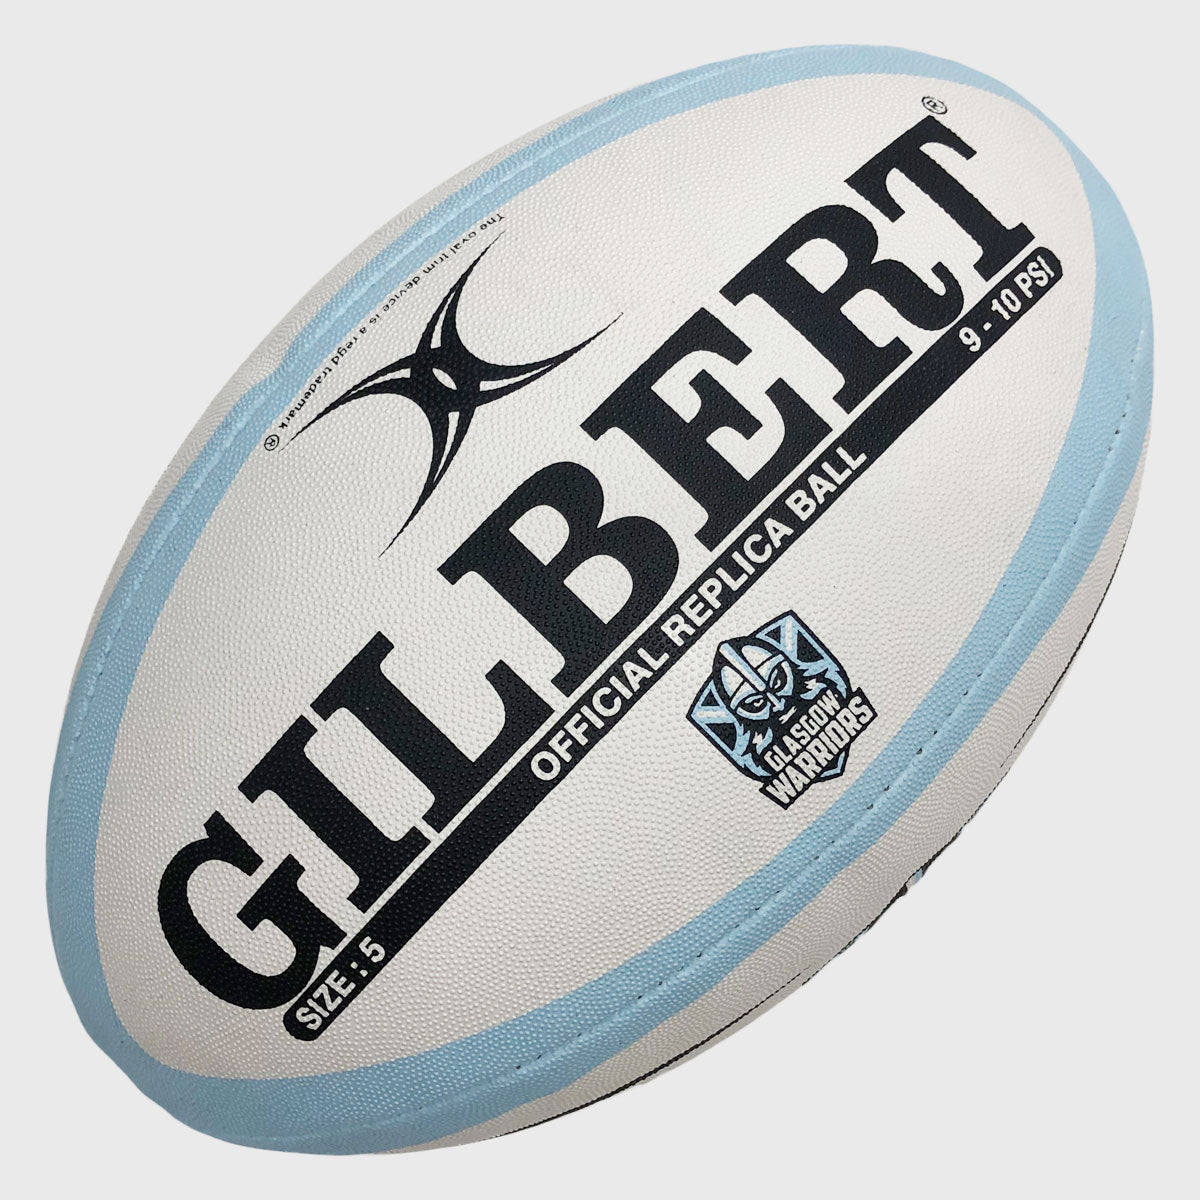 Glasgow Warriors Replica Rugby Ball 2019/20 - First XV rugbystuff.com